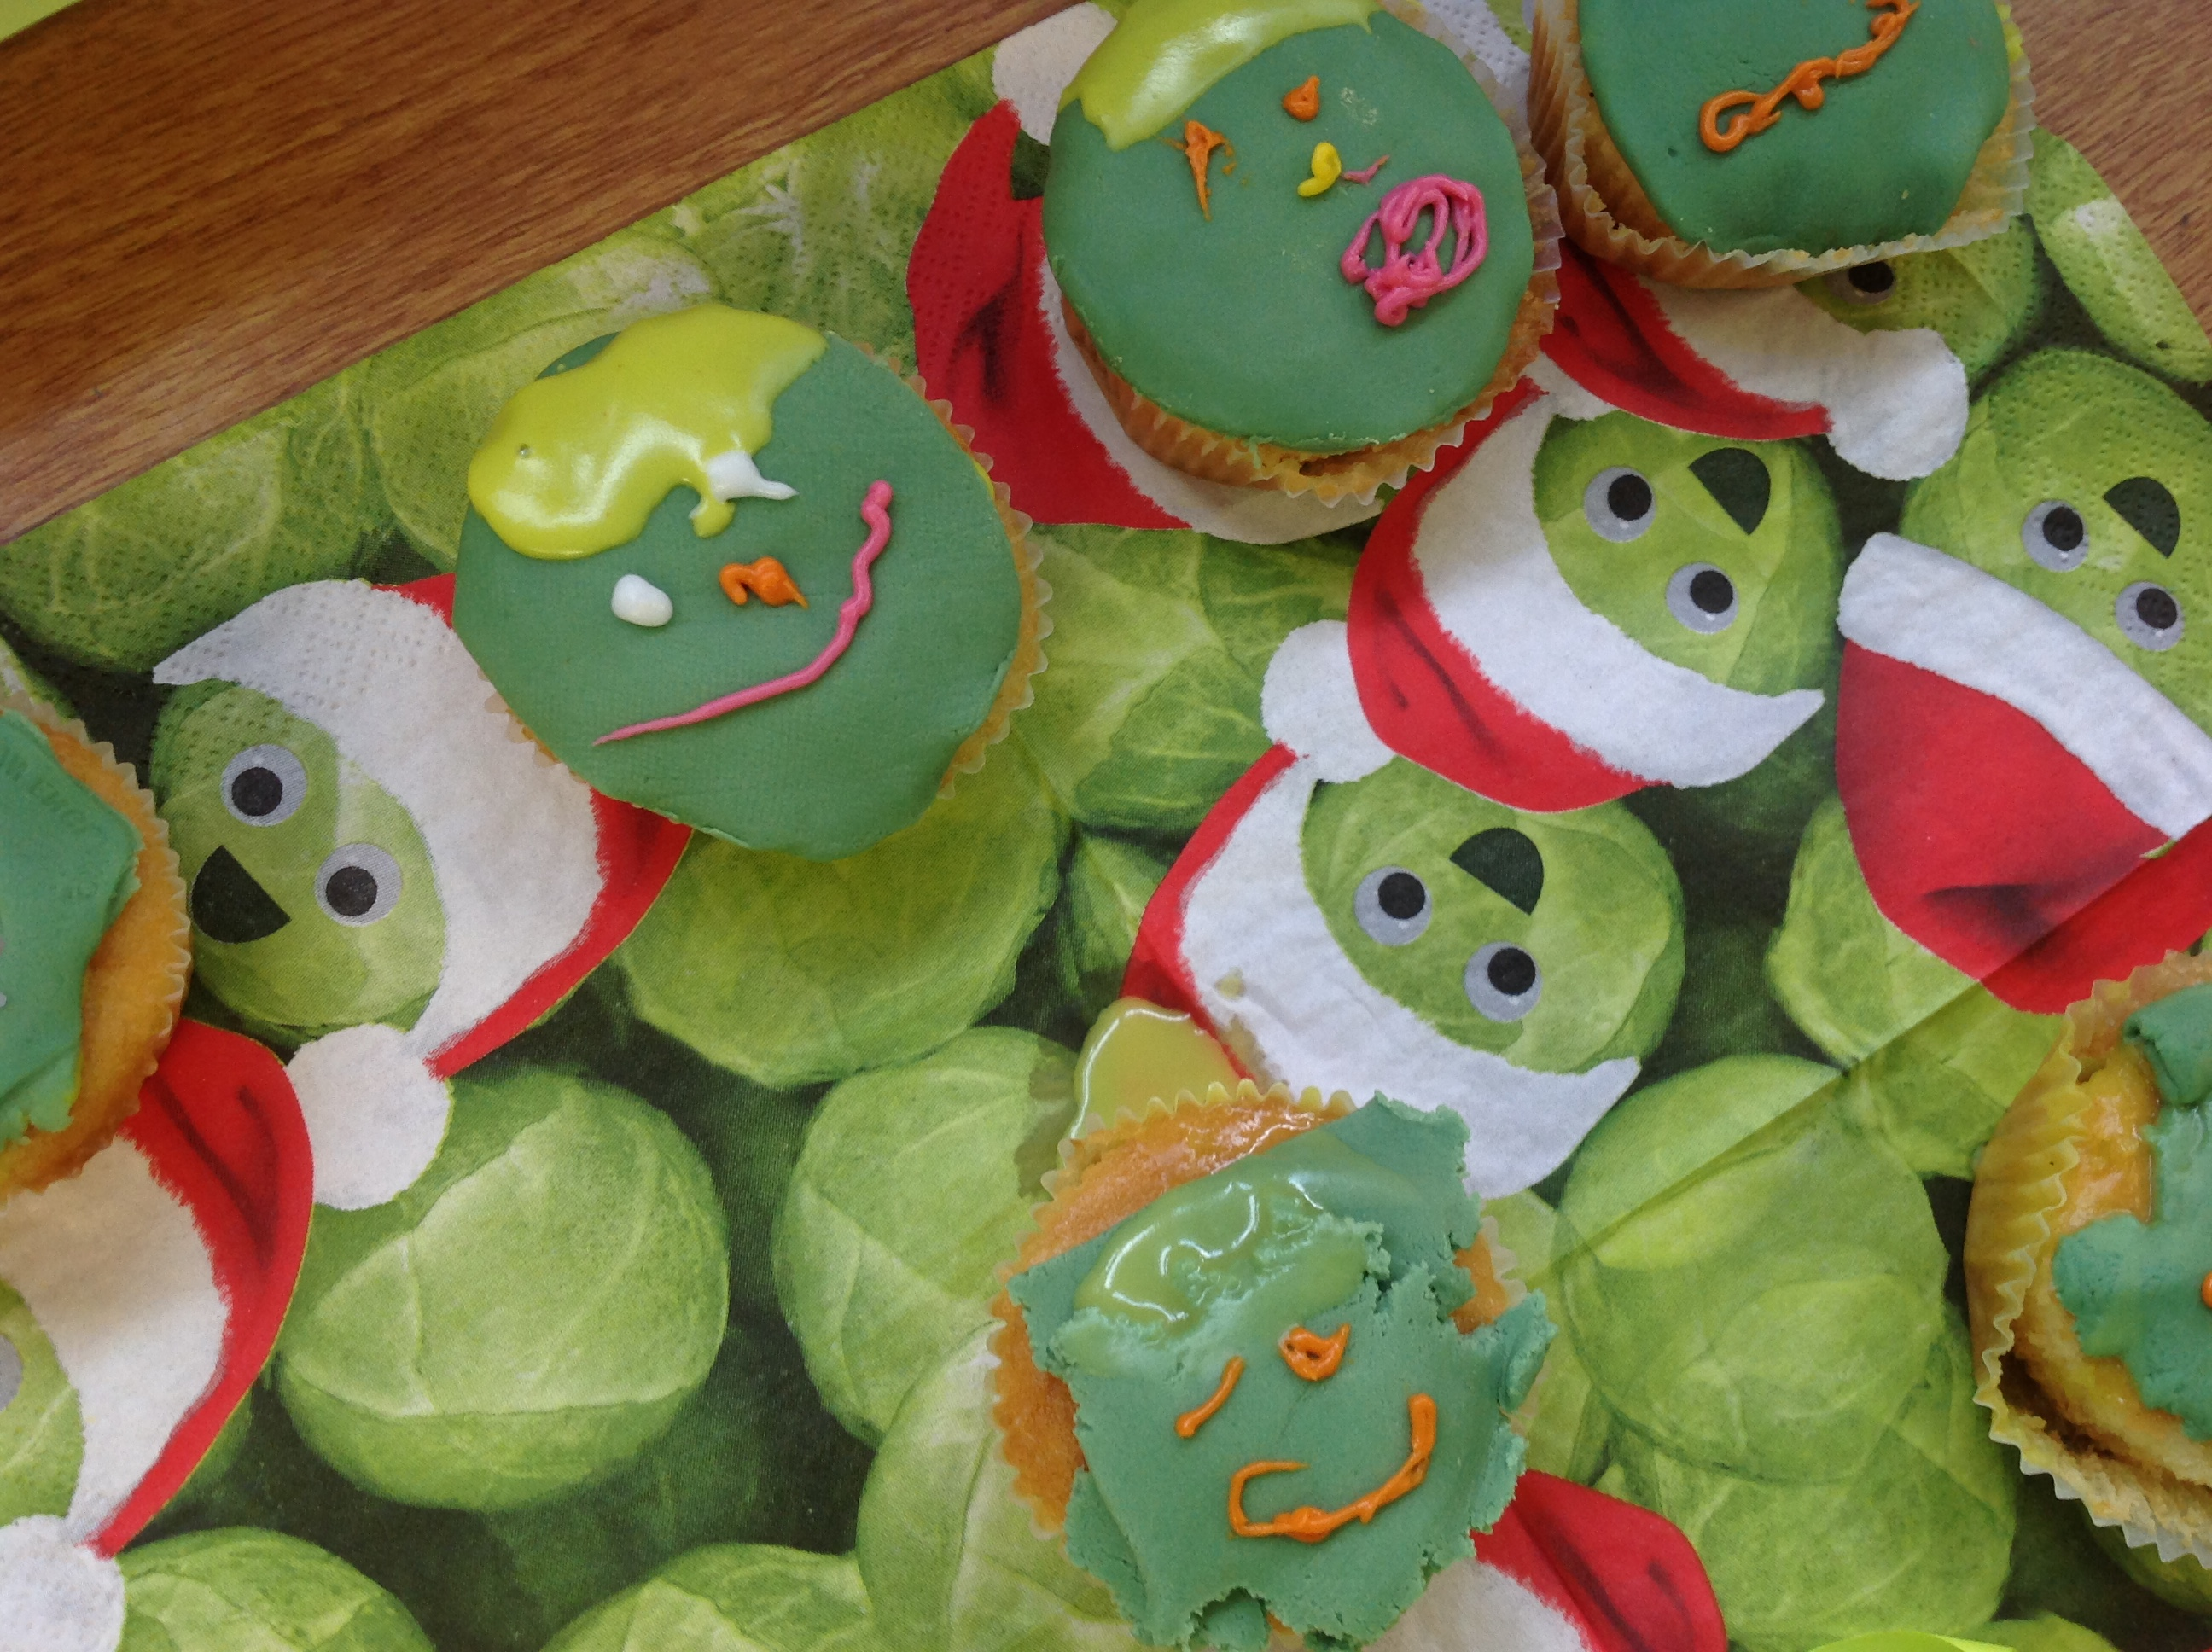 Designing and creating Sprout Cakes!